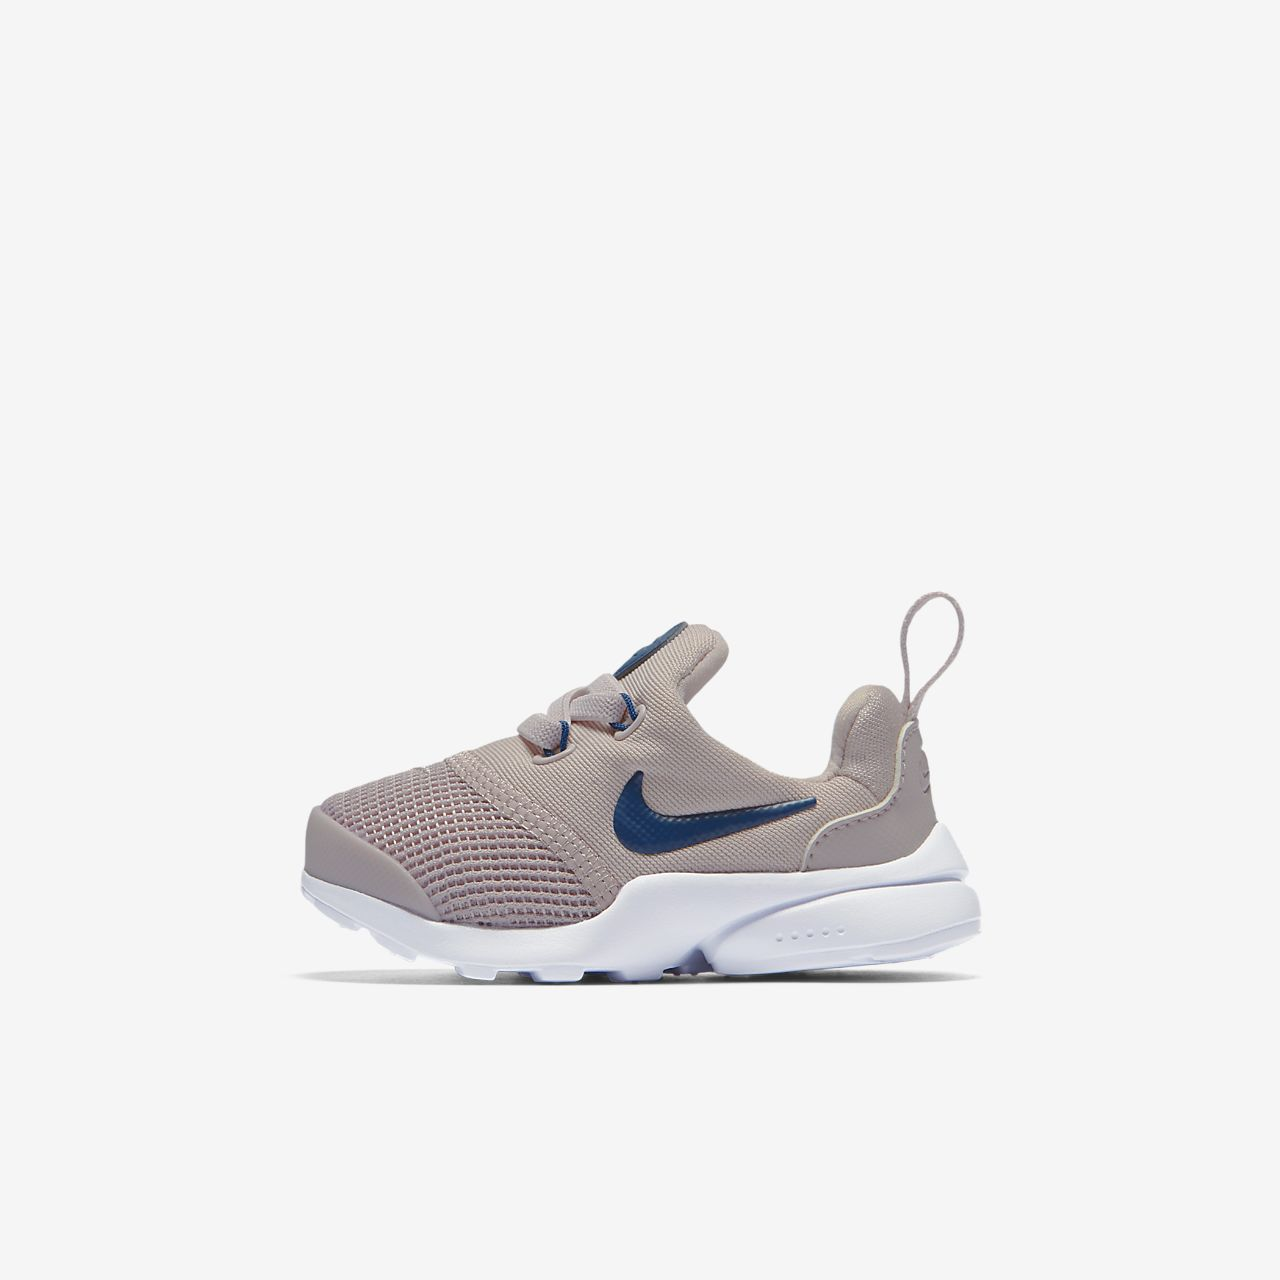 wholesale dealer 1736d f1151 ... sko nike presto fly för baby små barn